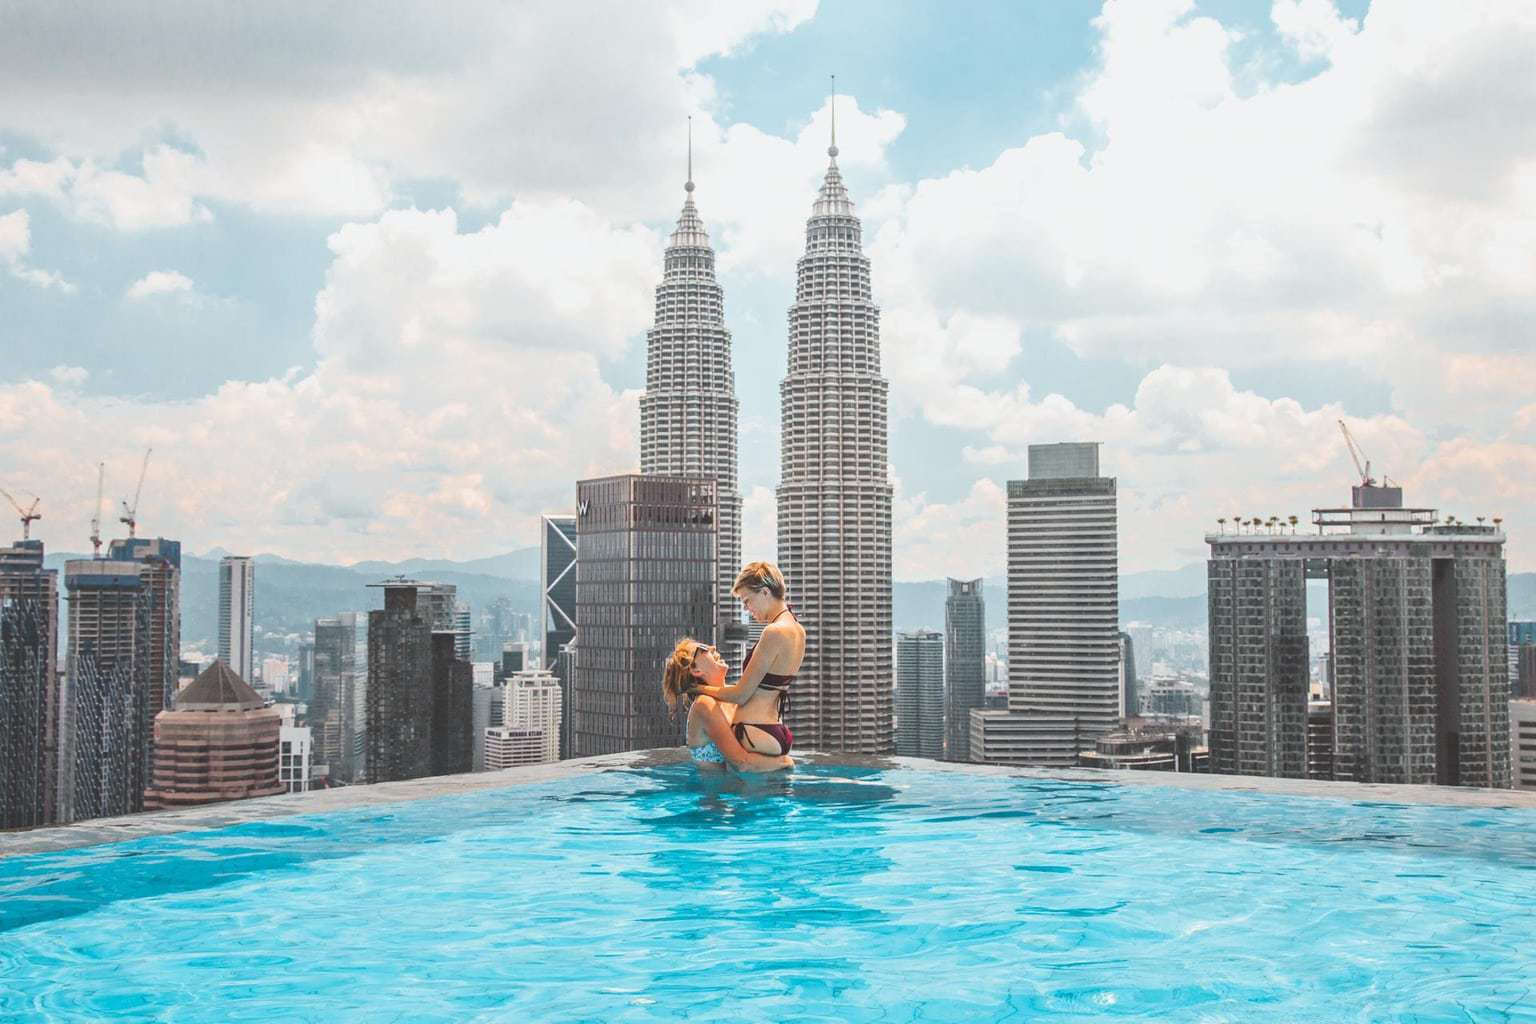 The Face Suites, Kuala Lumpur